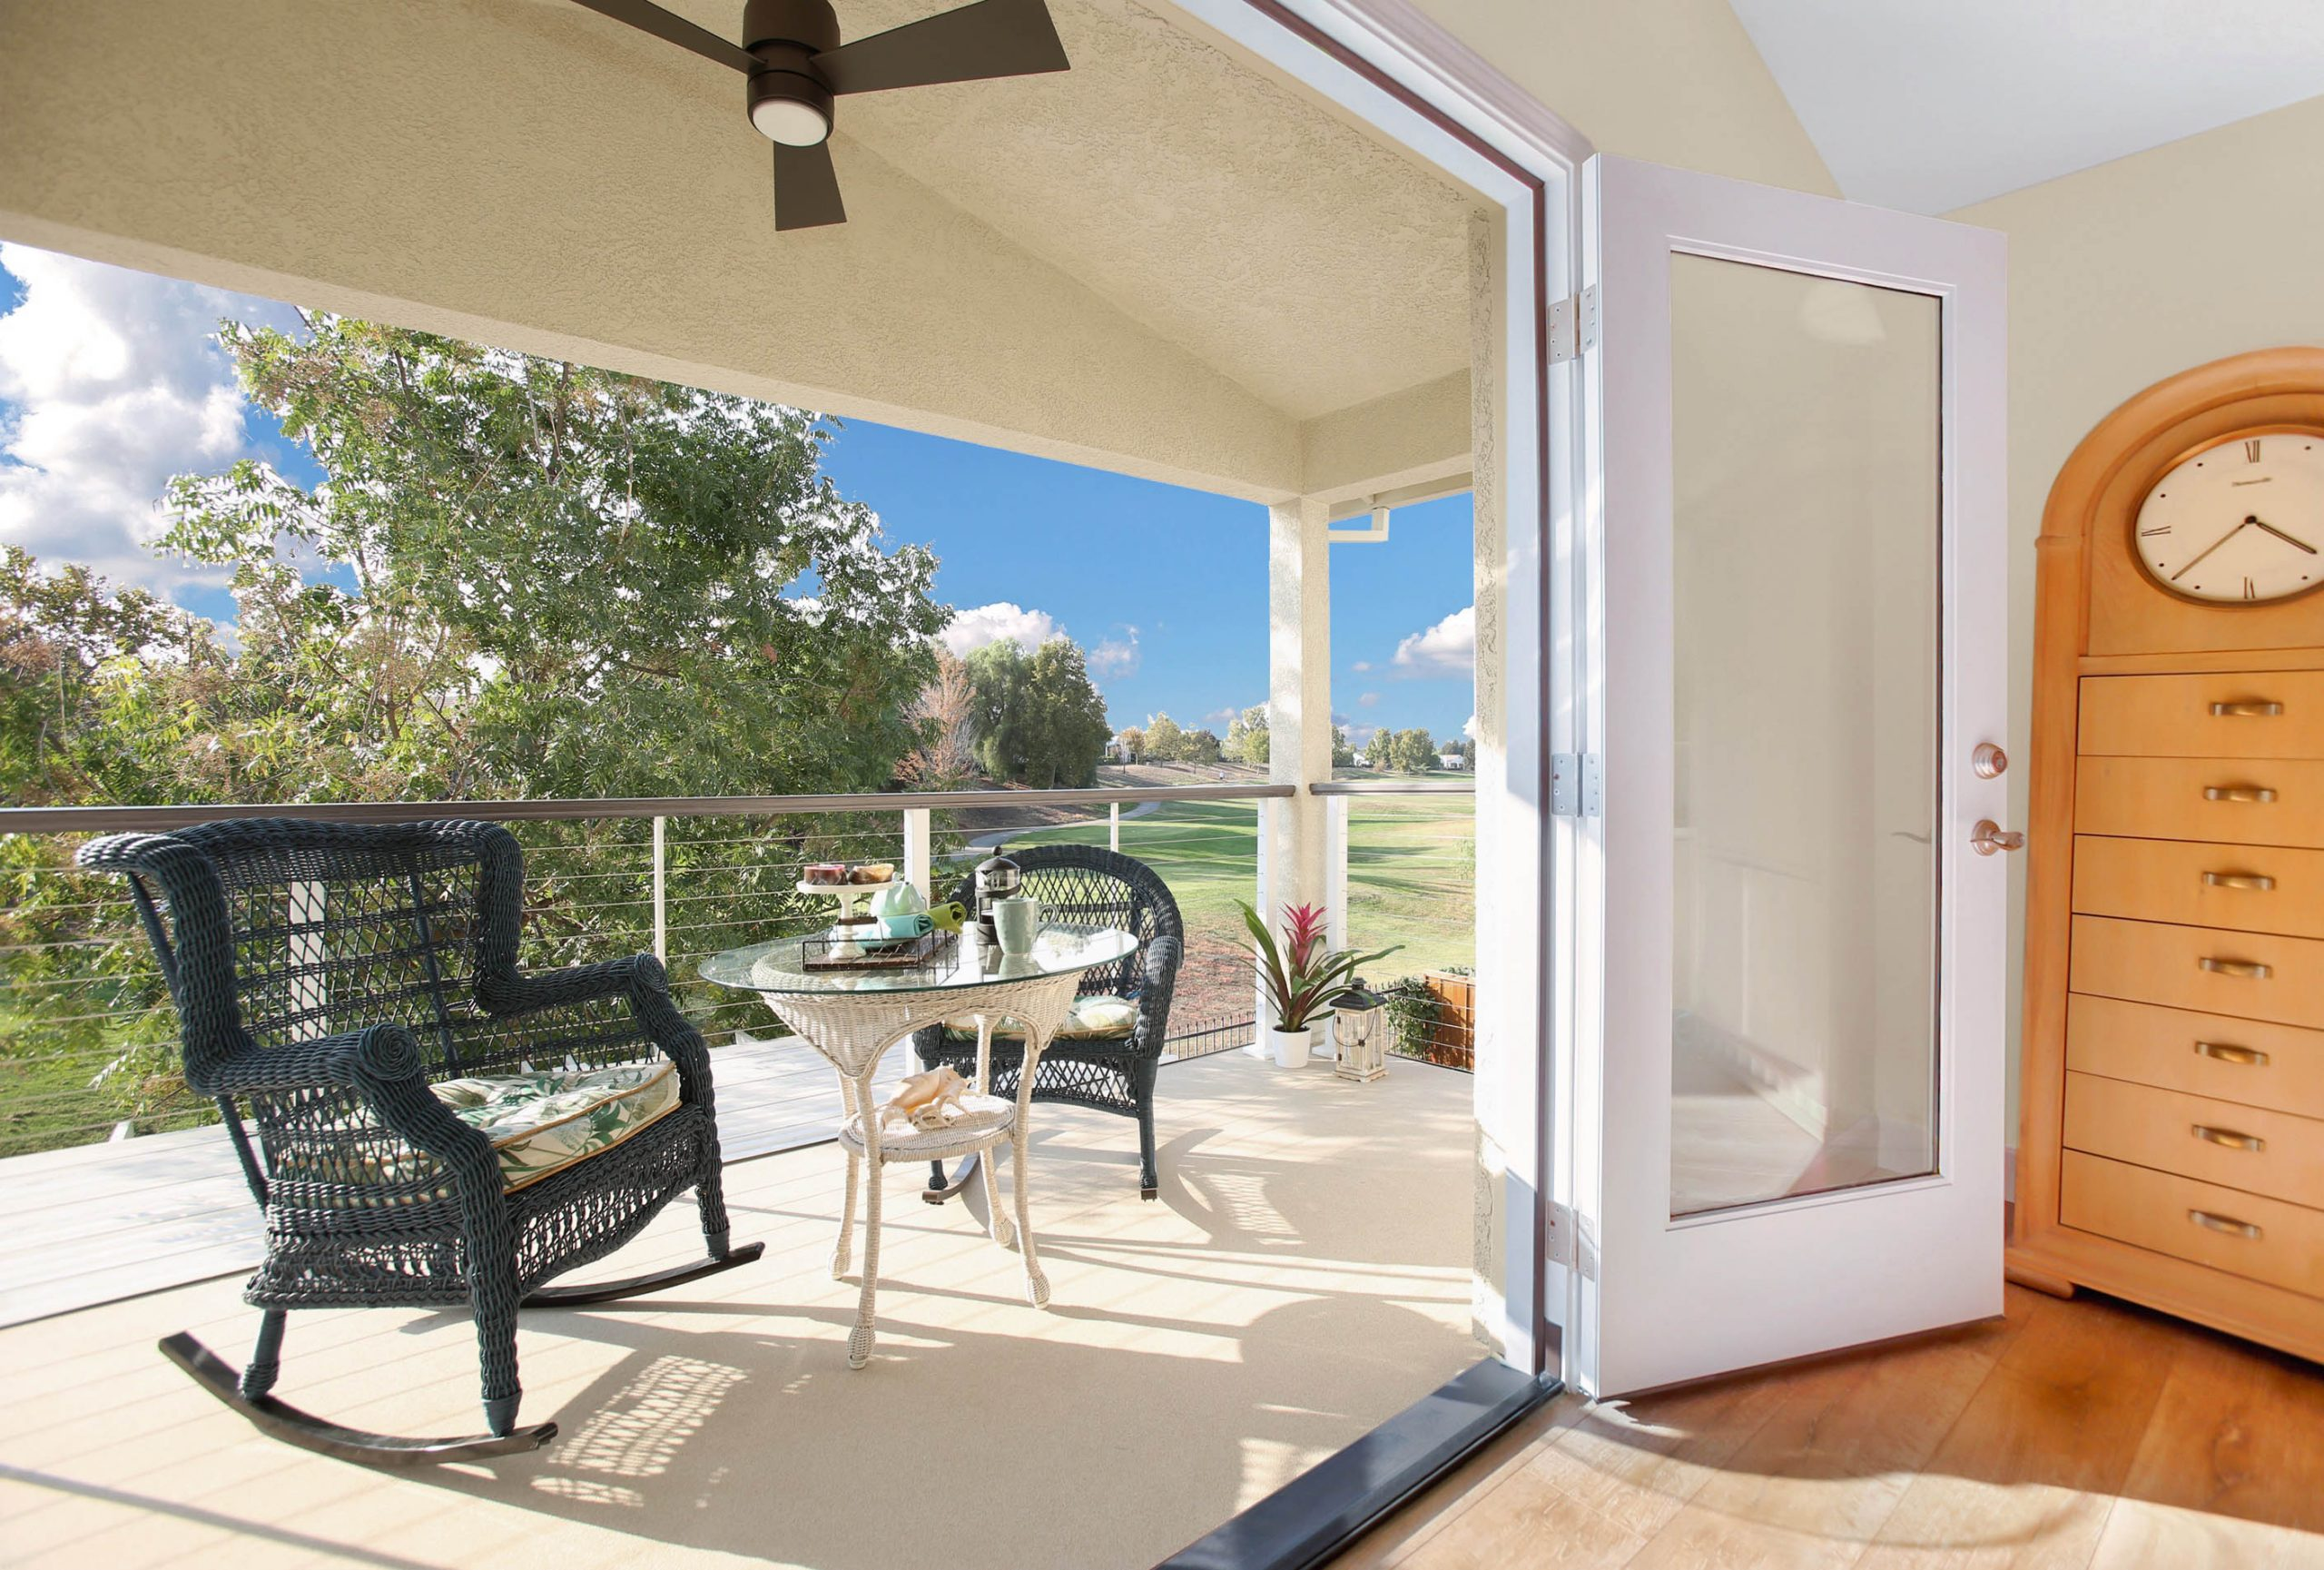 A 7-foot bump out to the family room on the first floor provided a perfect location for a balcony off the master suit with an excellent view of the golf course and mountains beyond.